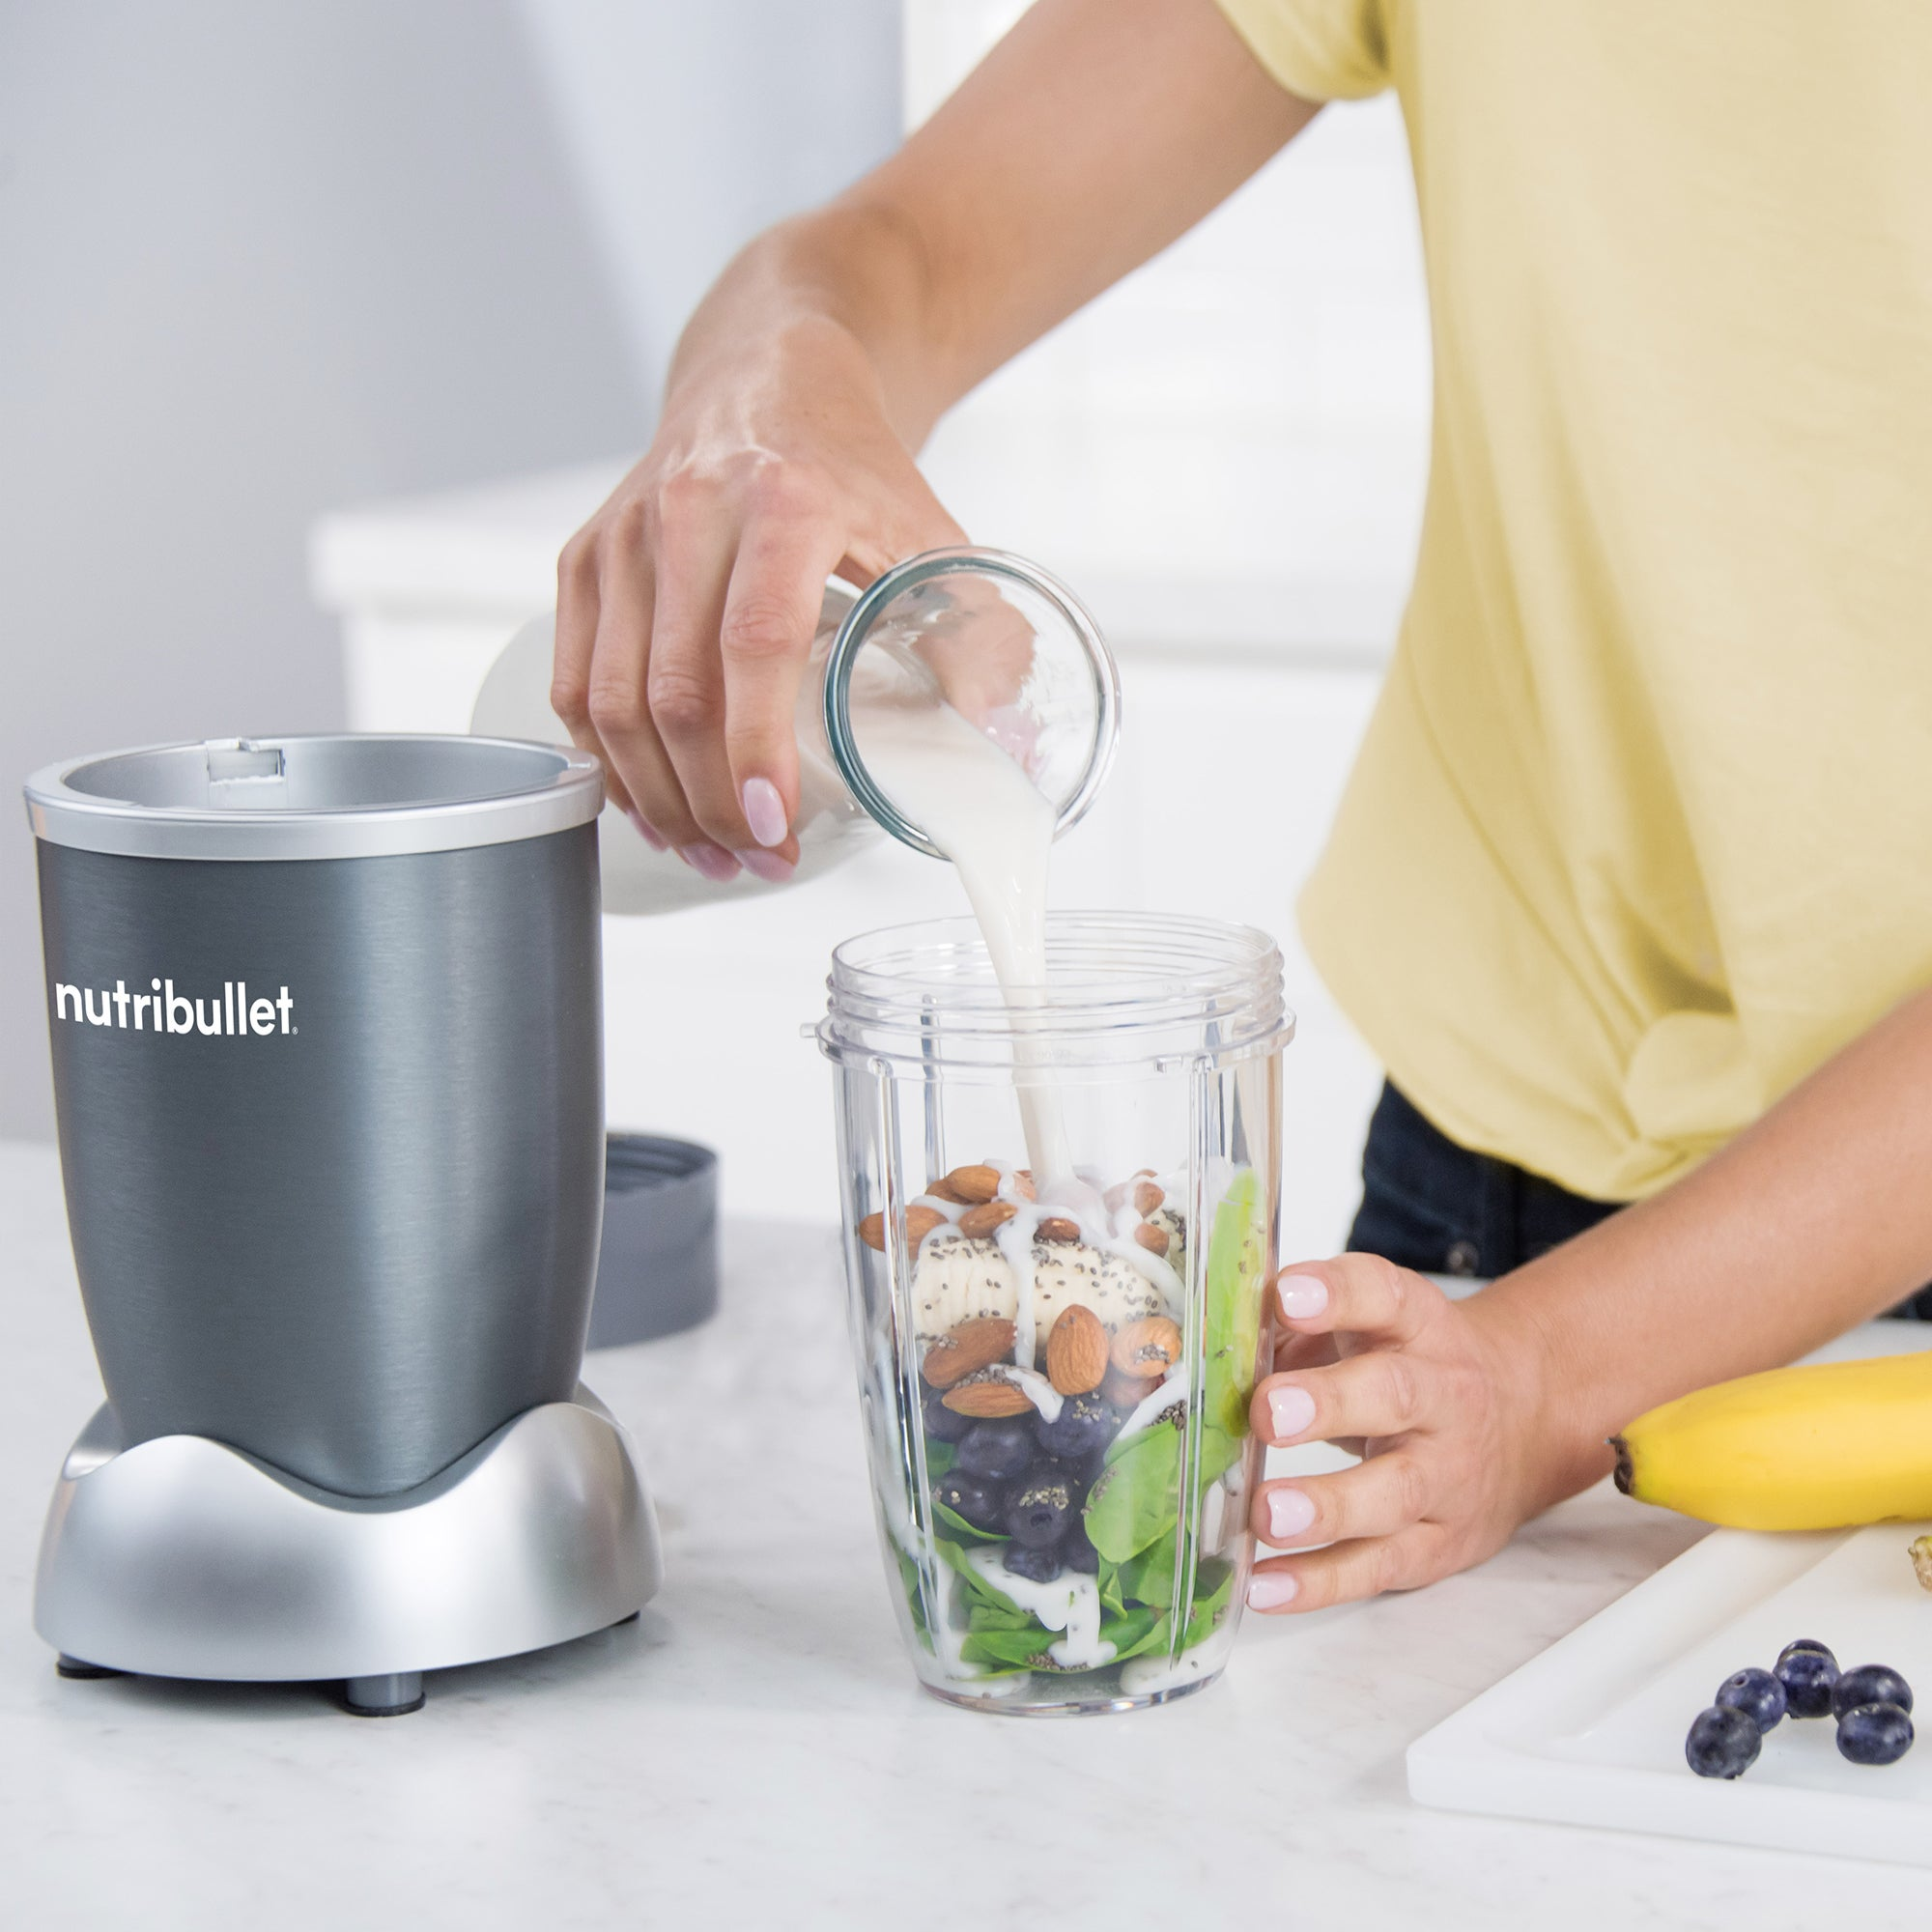 A blender with fruits, vegetables, and nuts in it